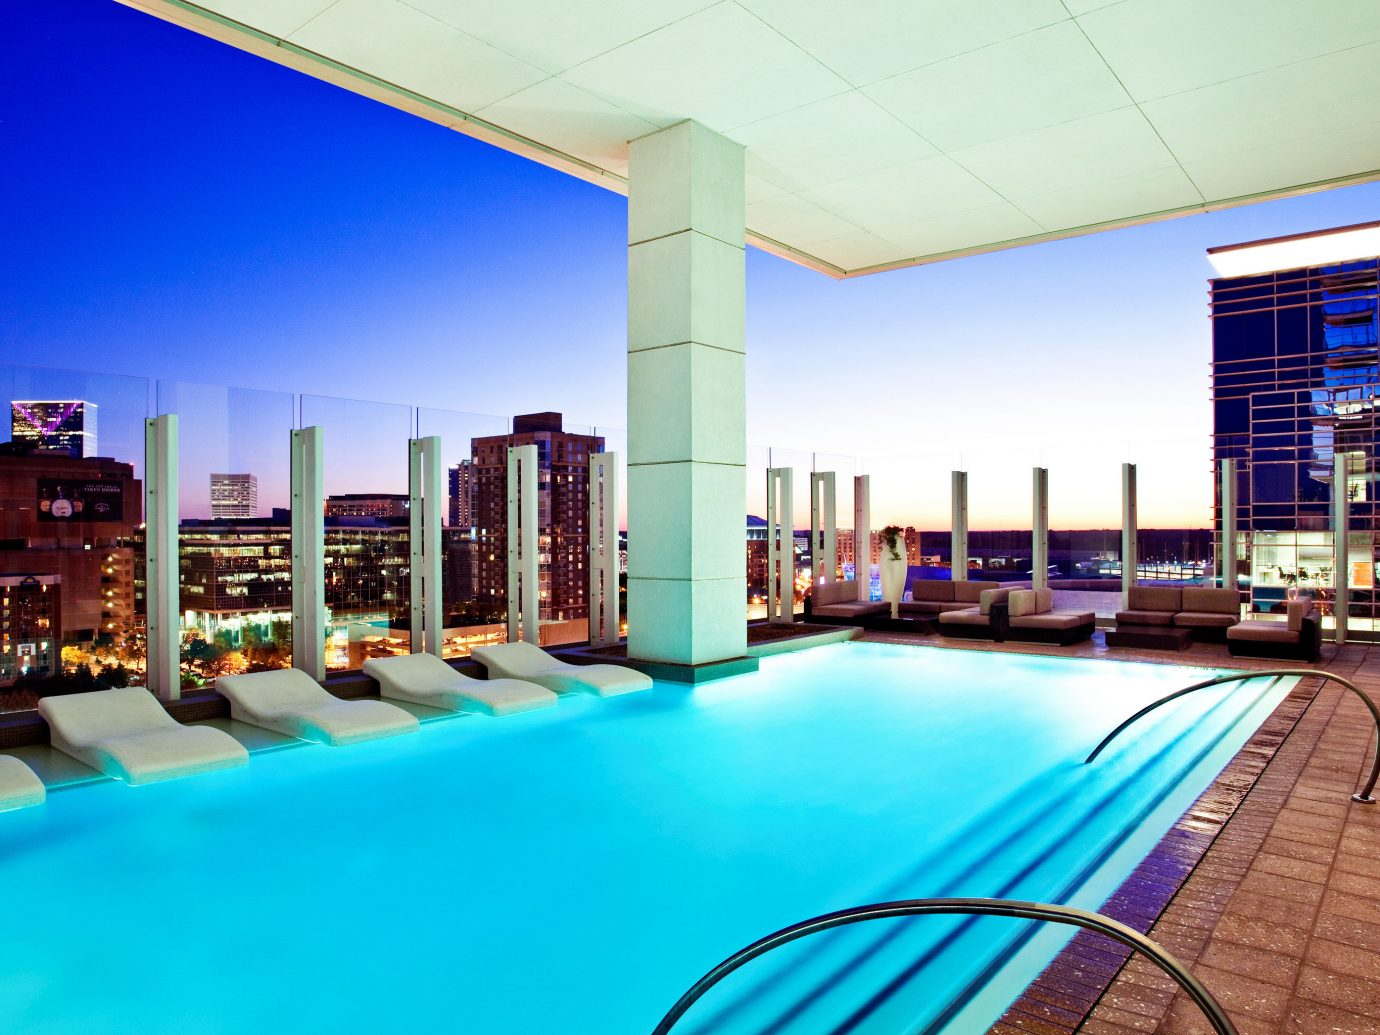 Hotels Lounge Luxury Modern Pool swimming pool leisure property condominium estate Resort interior design real estate convention center